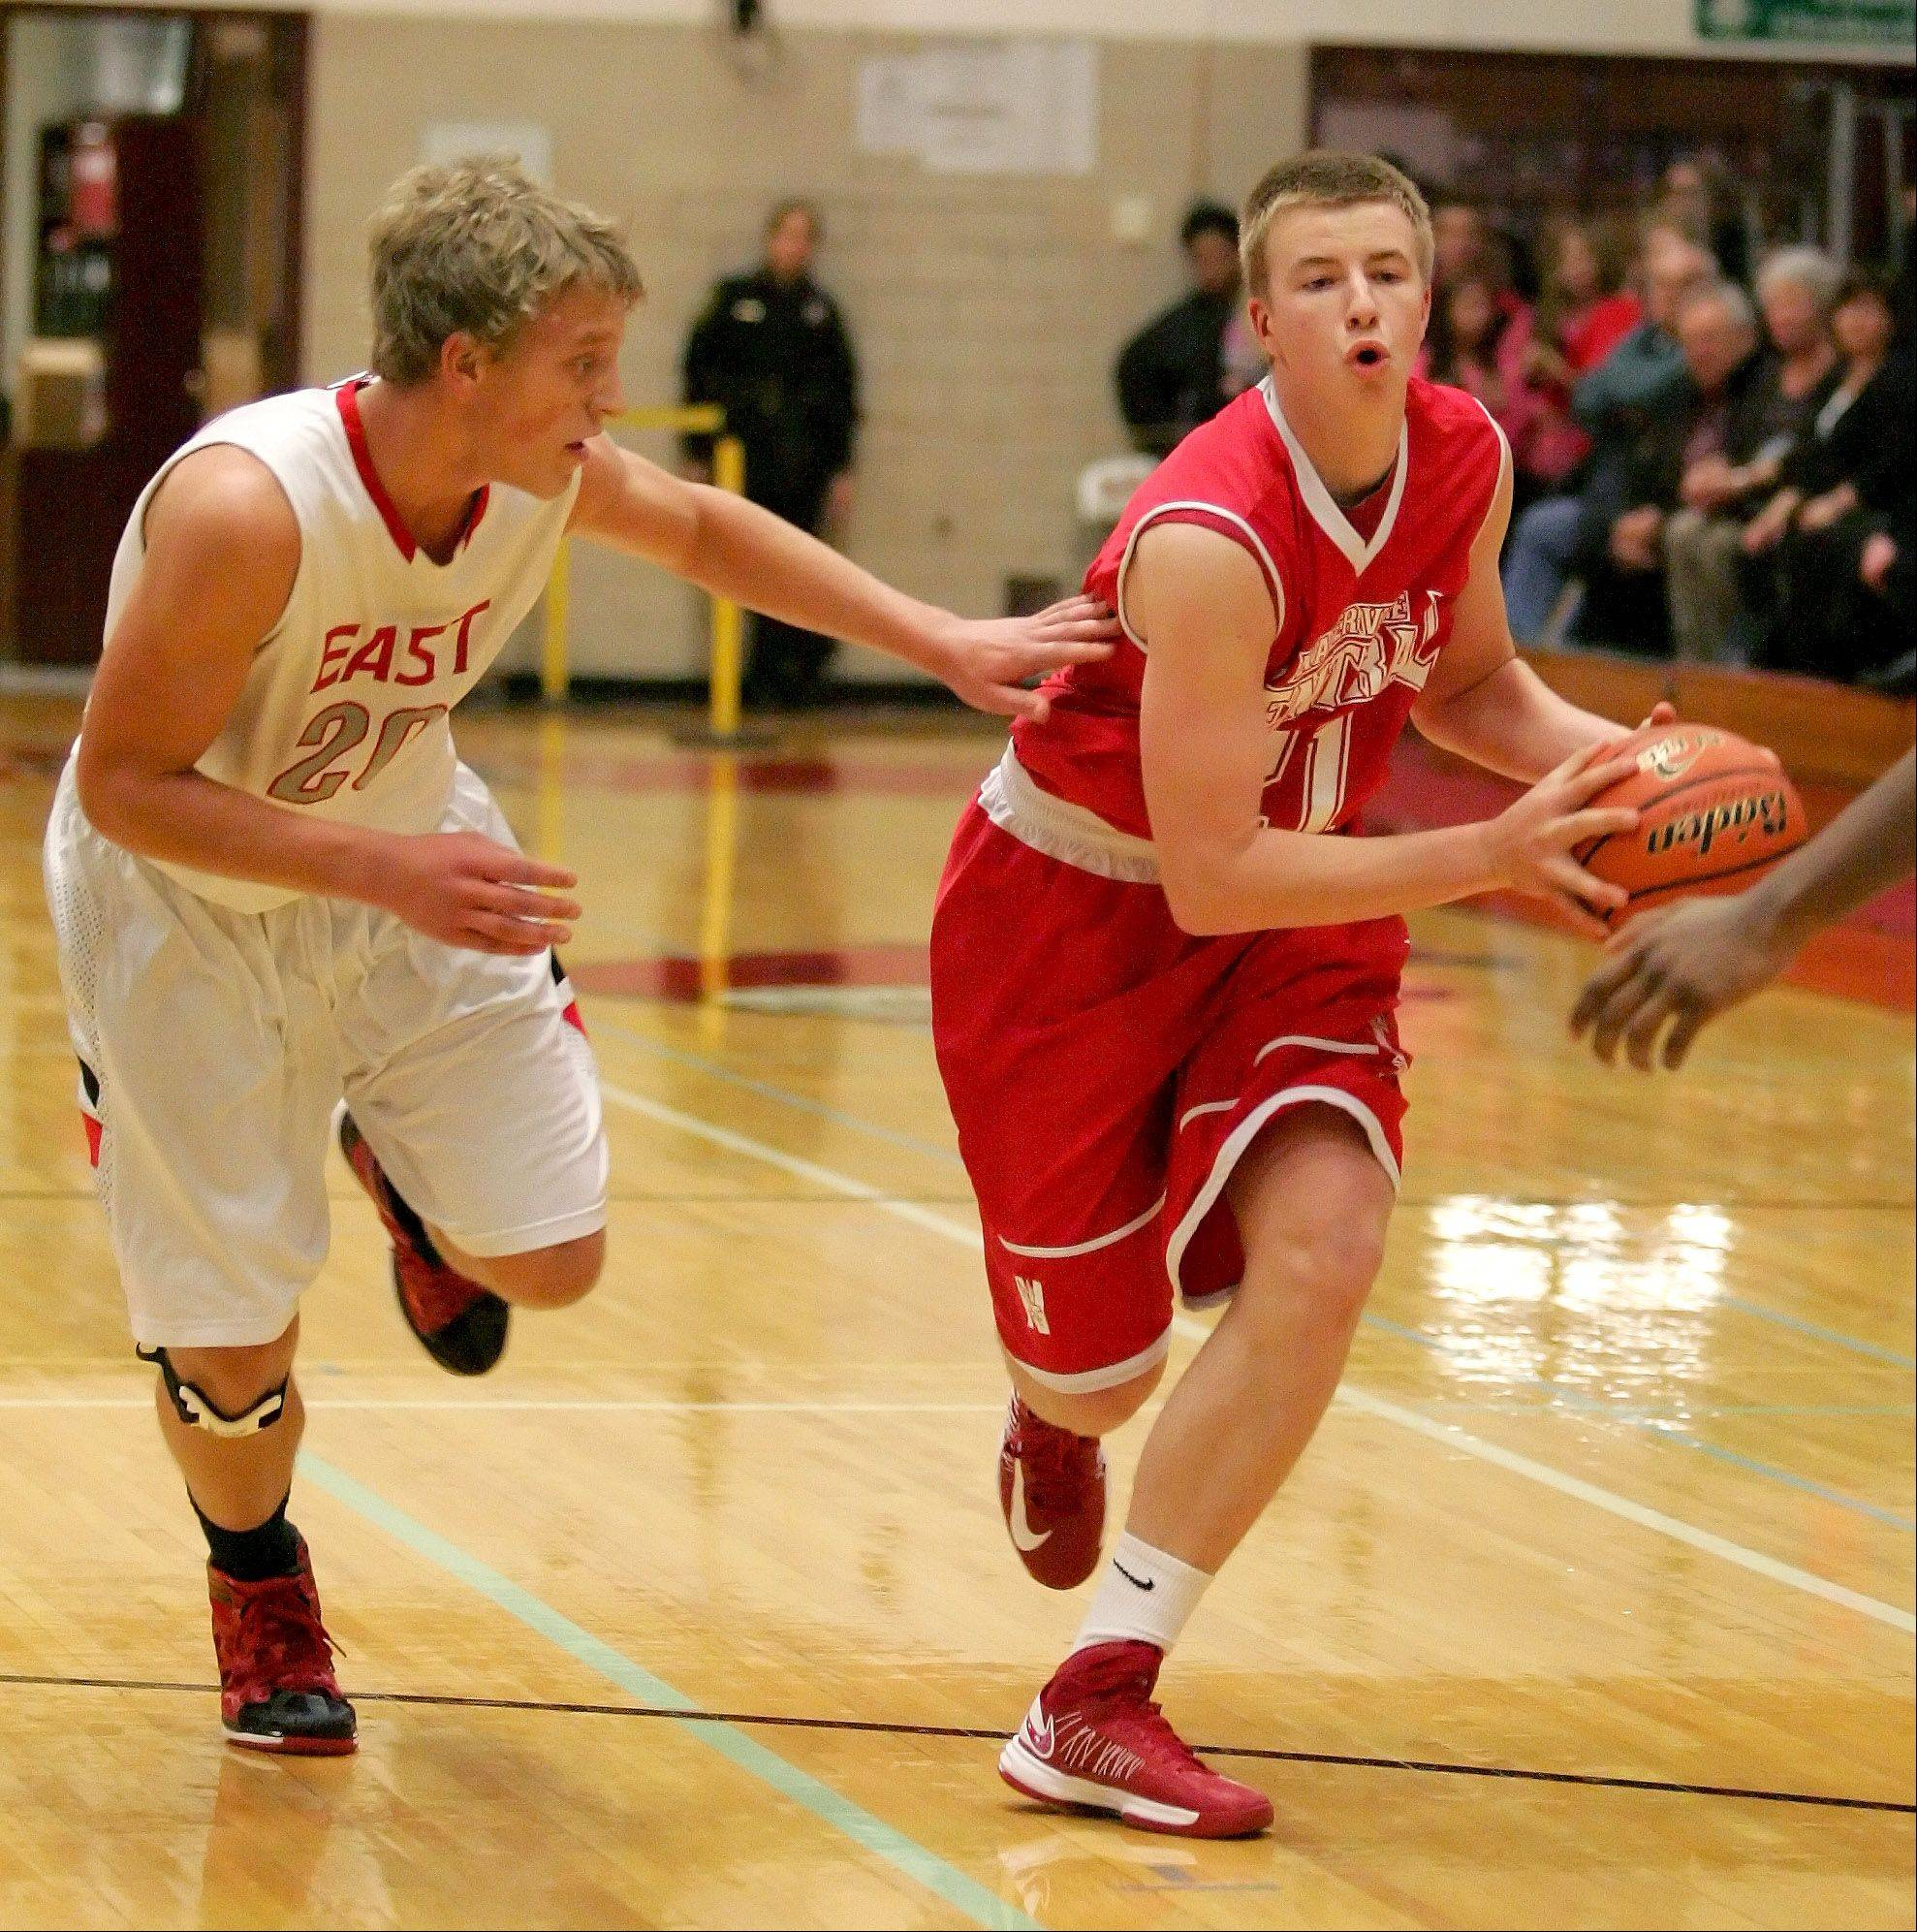 Mike Blaszczyk of Naperville Central, right, keeps the ball from Greg Ludwig of Glenbard East in boys basketball action Friday in Lombard.